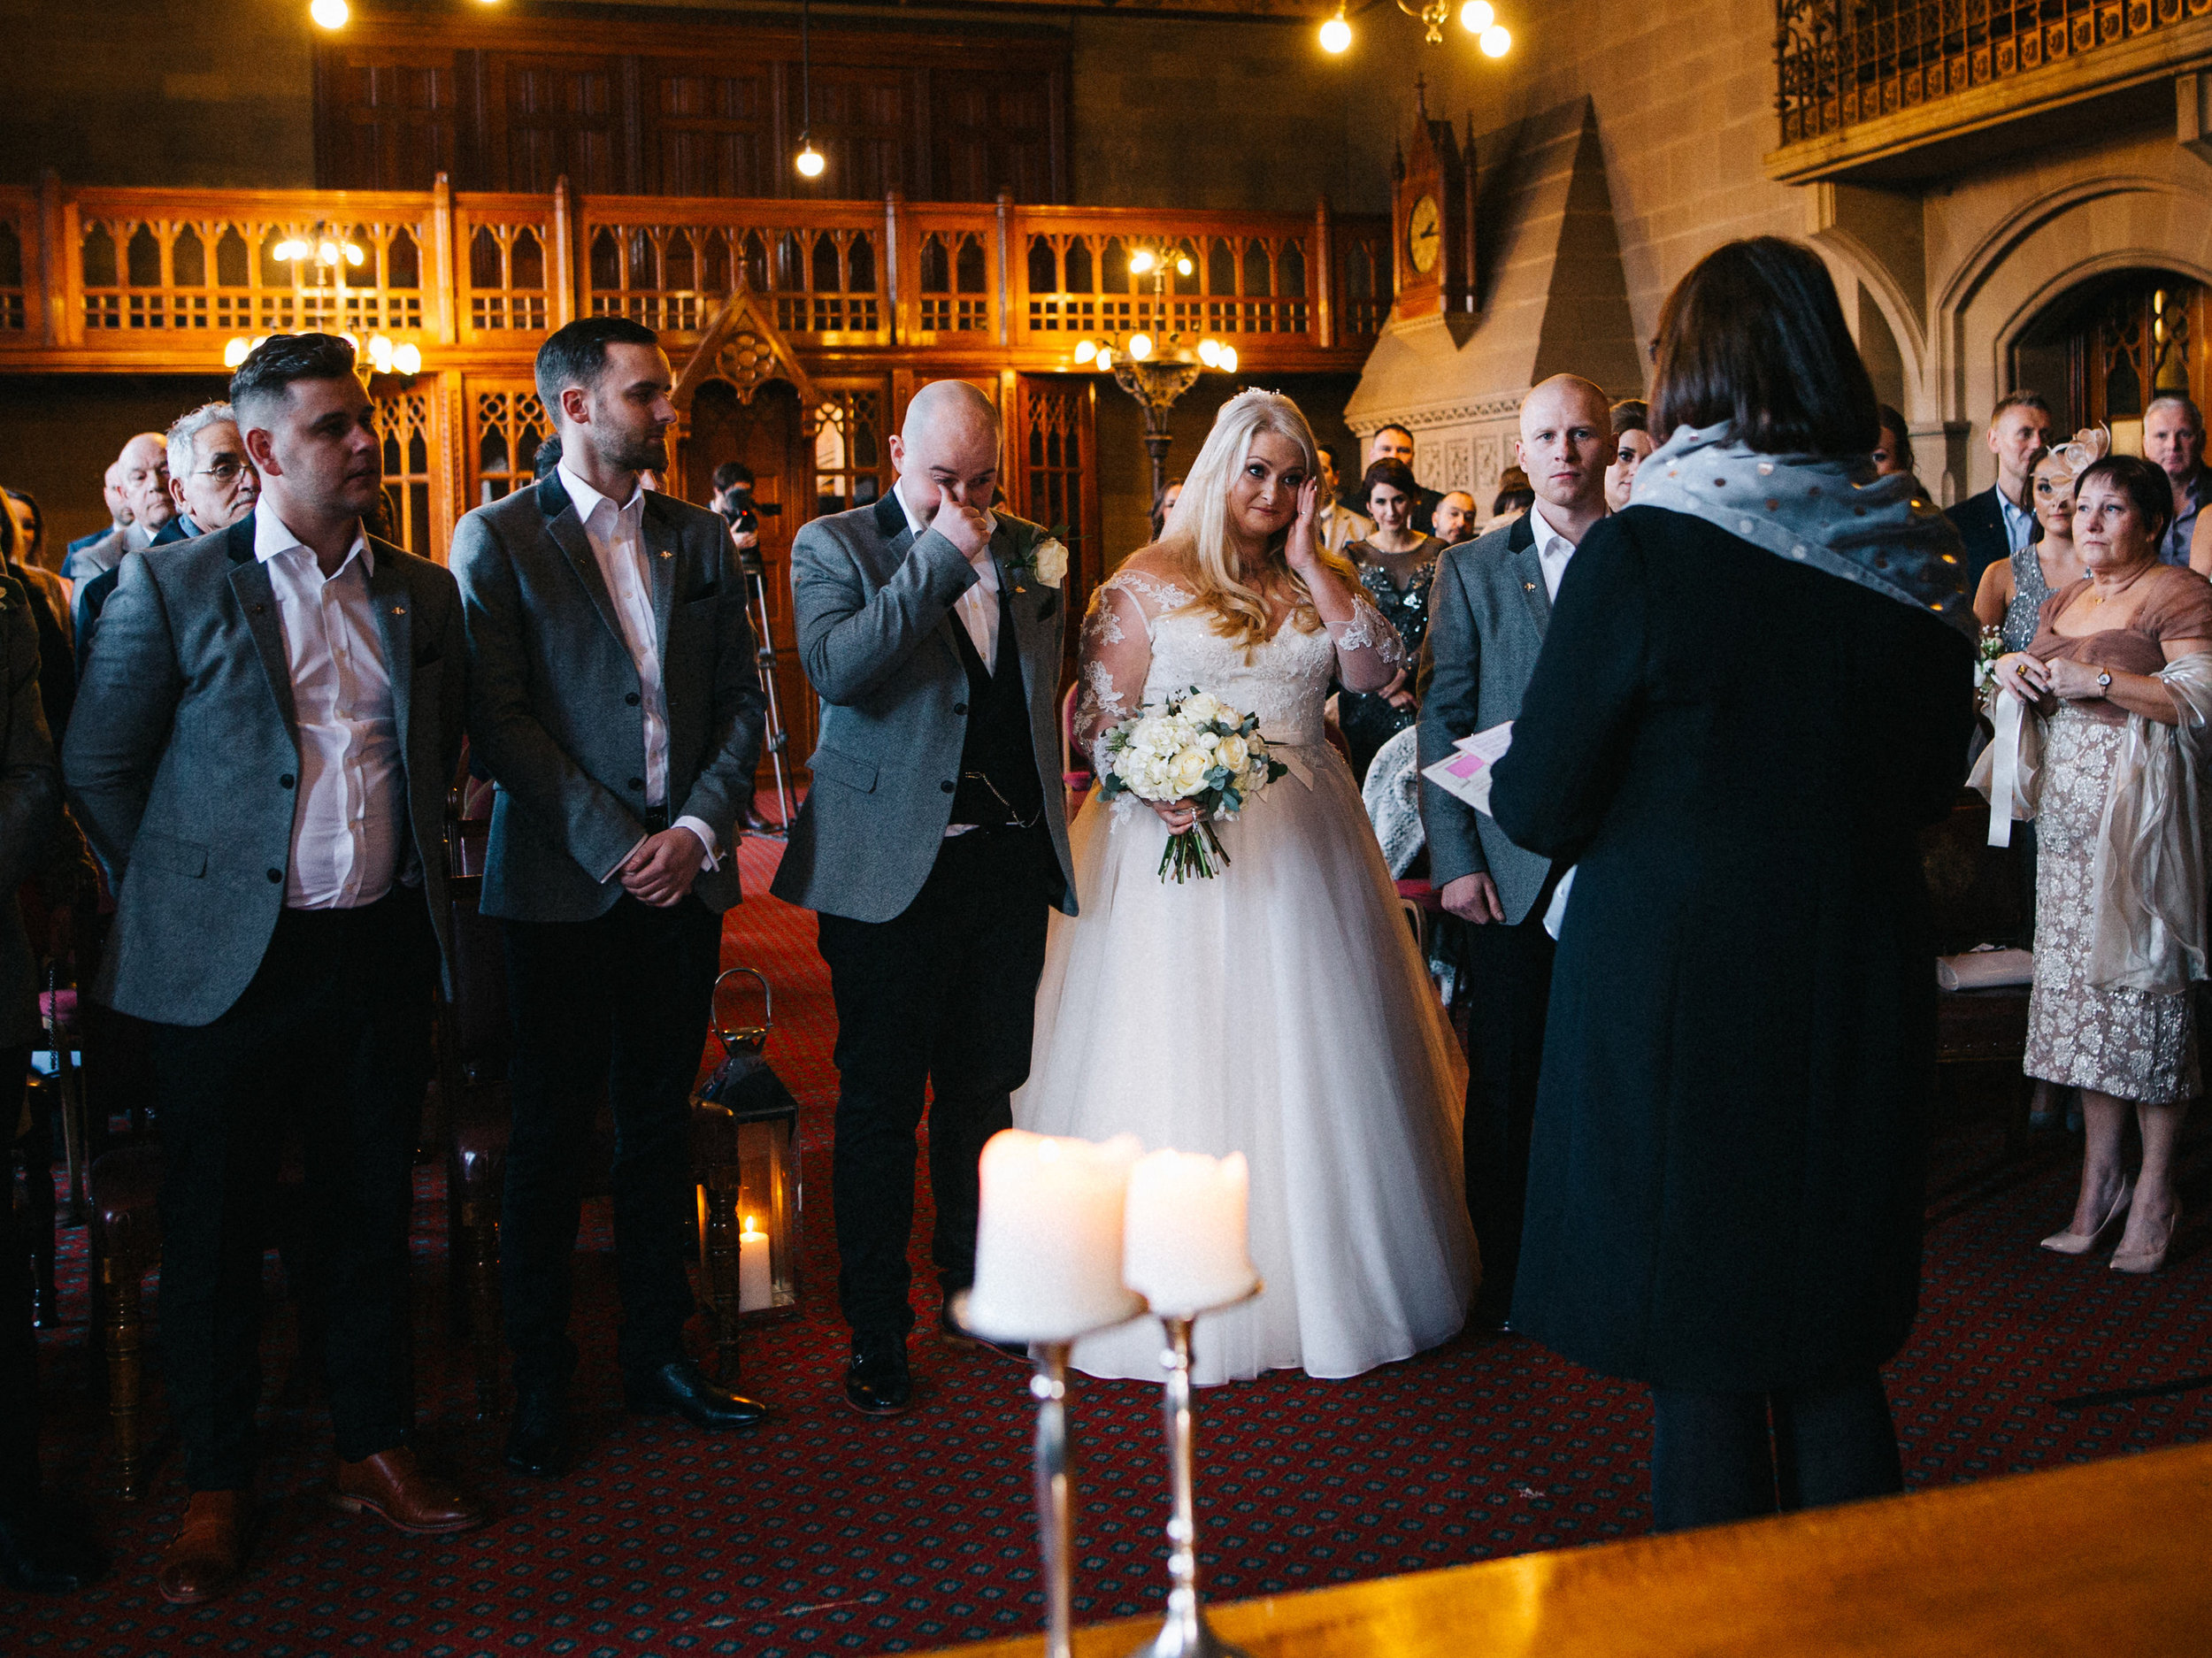 documentary wedding photography in the North West - emotional bride and groom